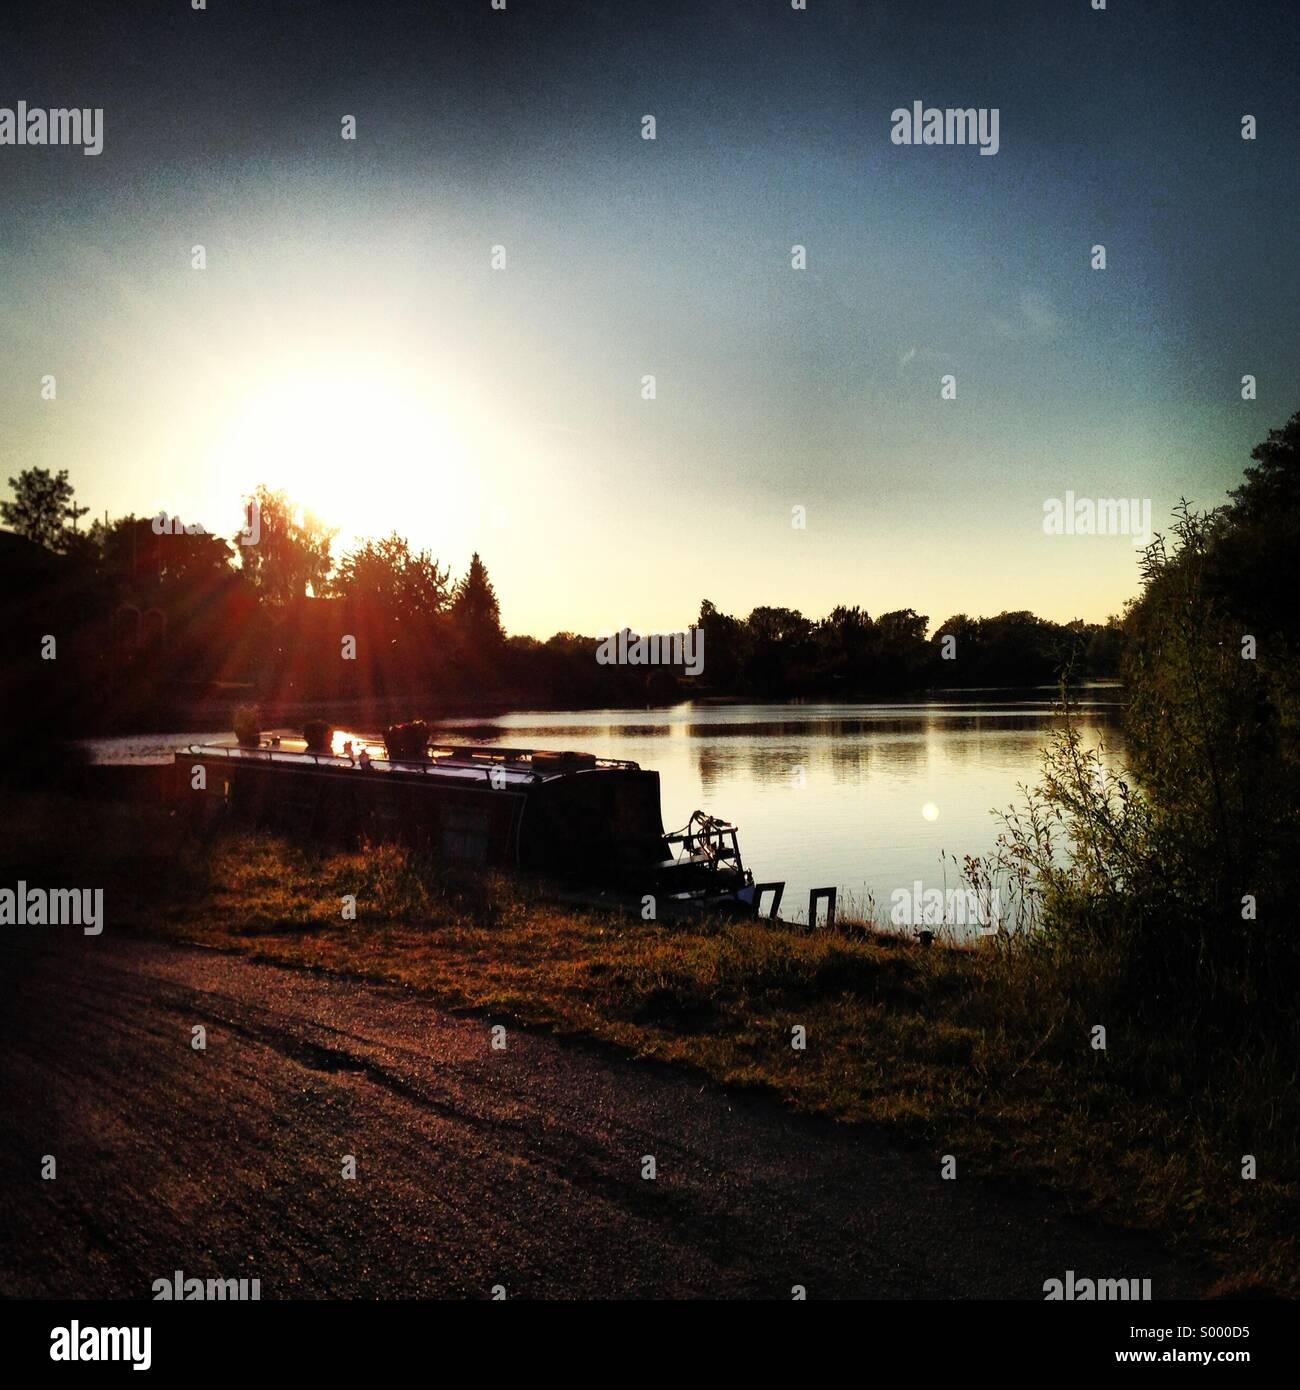 Sunset overlooking the river Thames, Oxford, UK - Stock Image